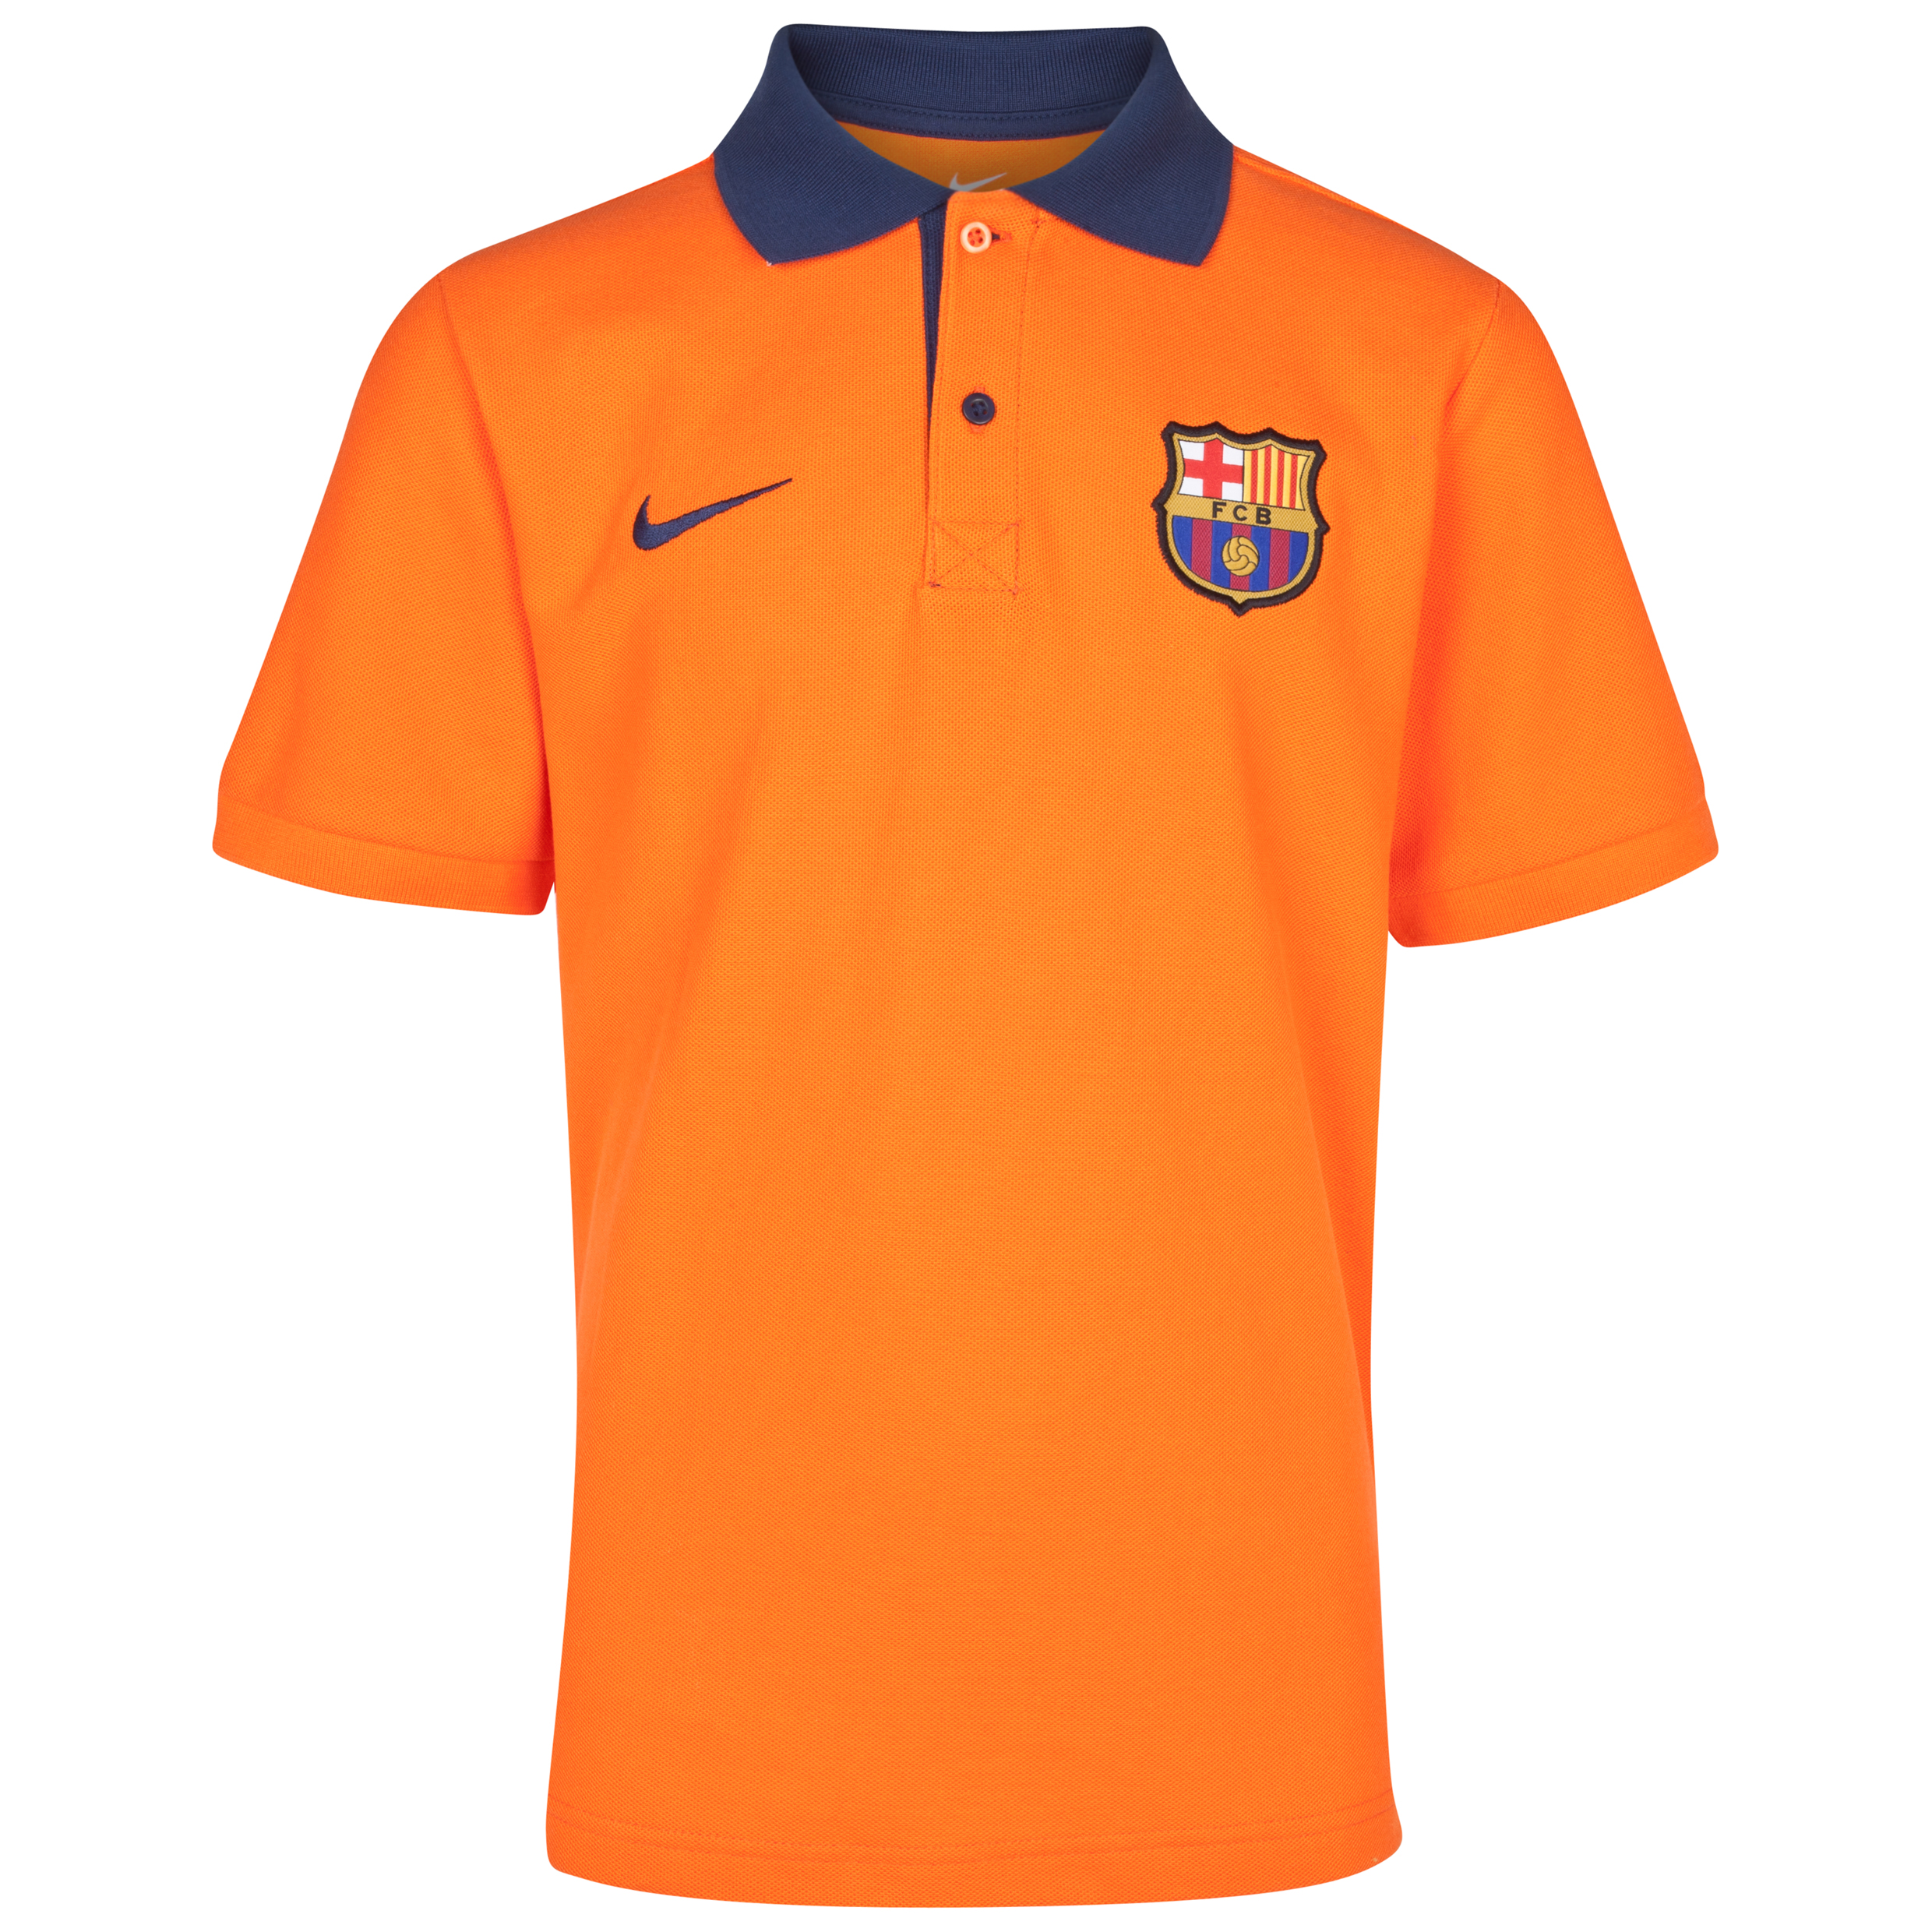 Barcelona Core Polo- Safety Orange/Midnight Navy - Youths